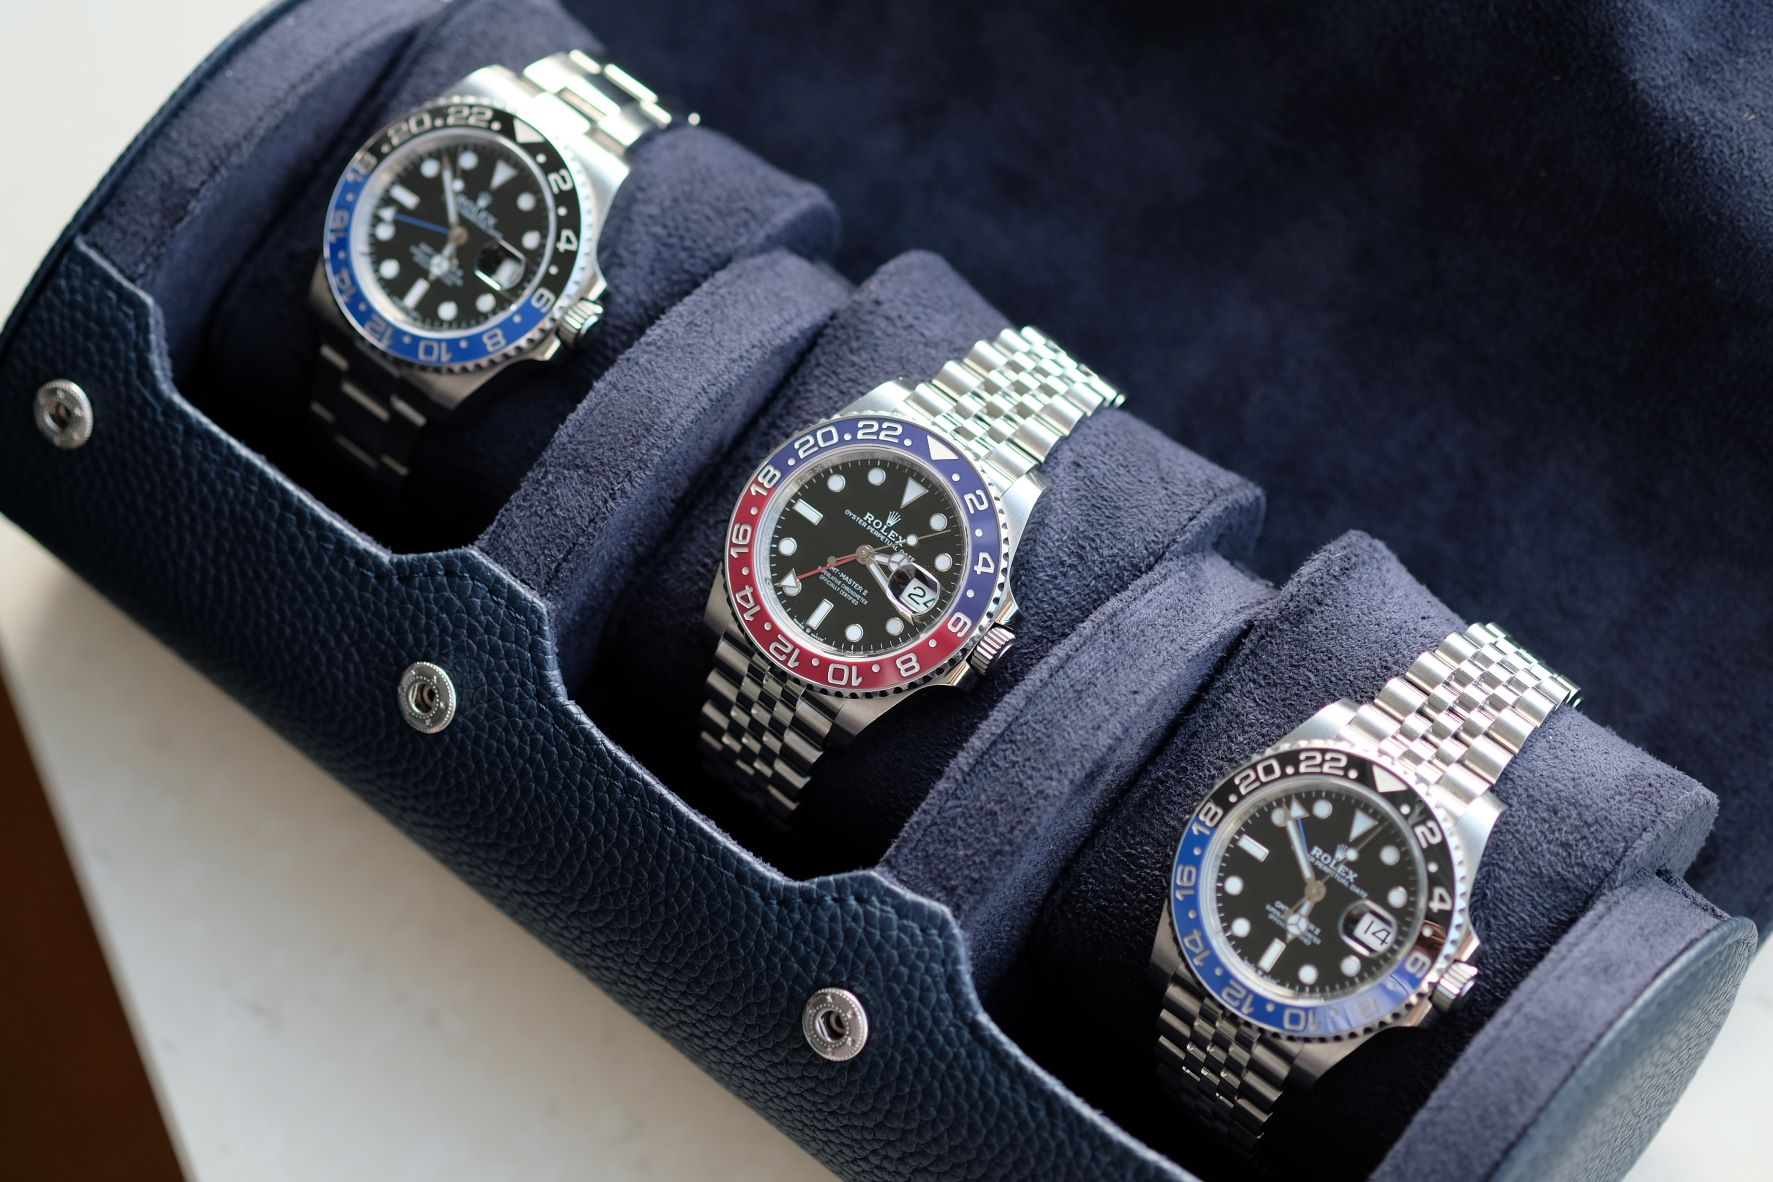 Rolex GMT-Master II in several variations